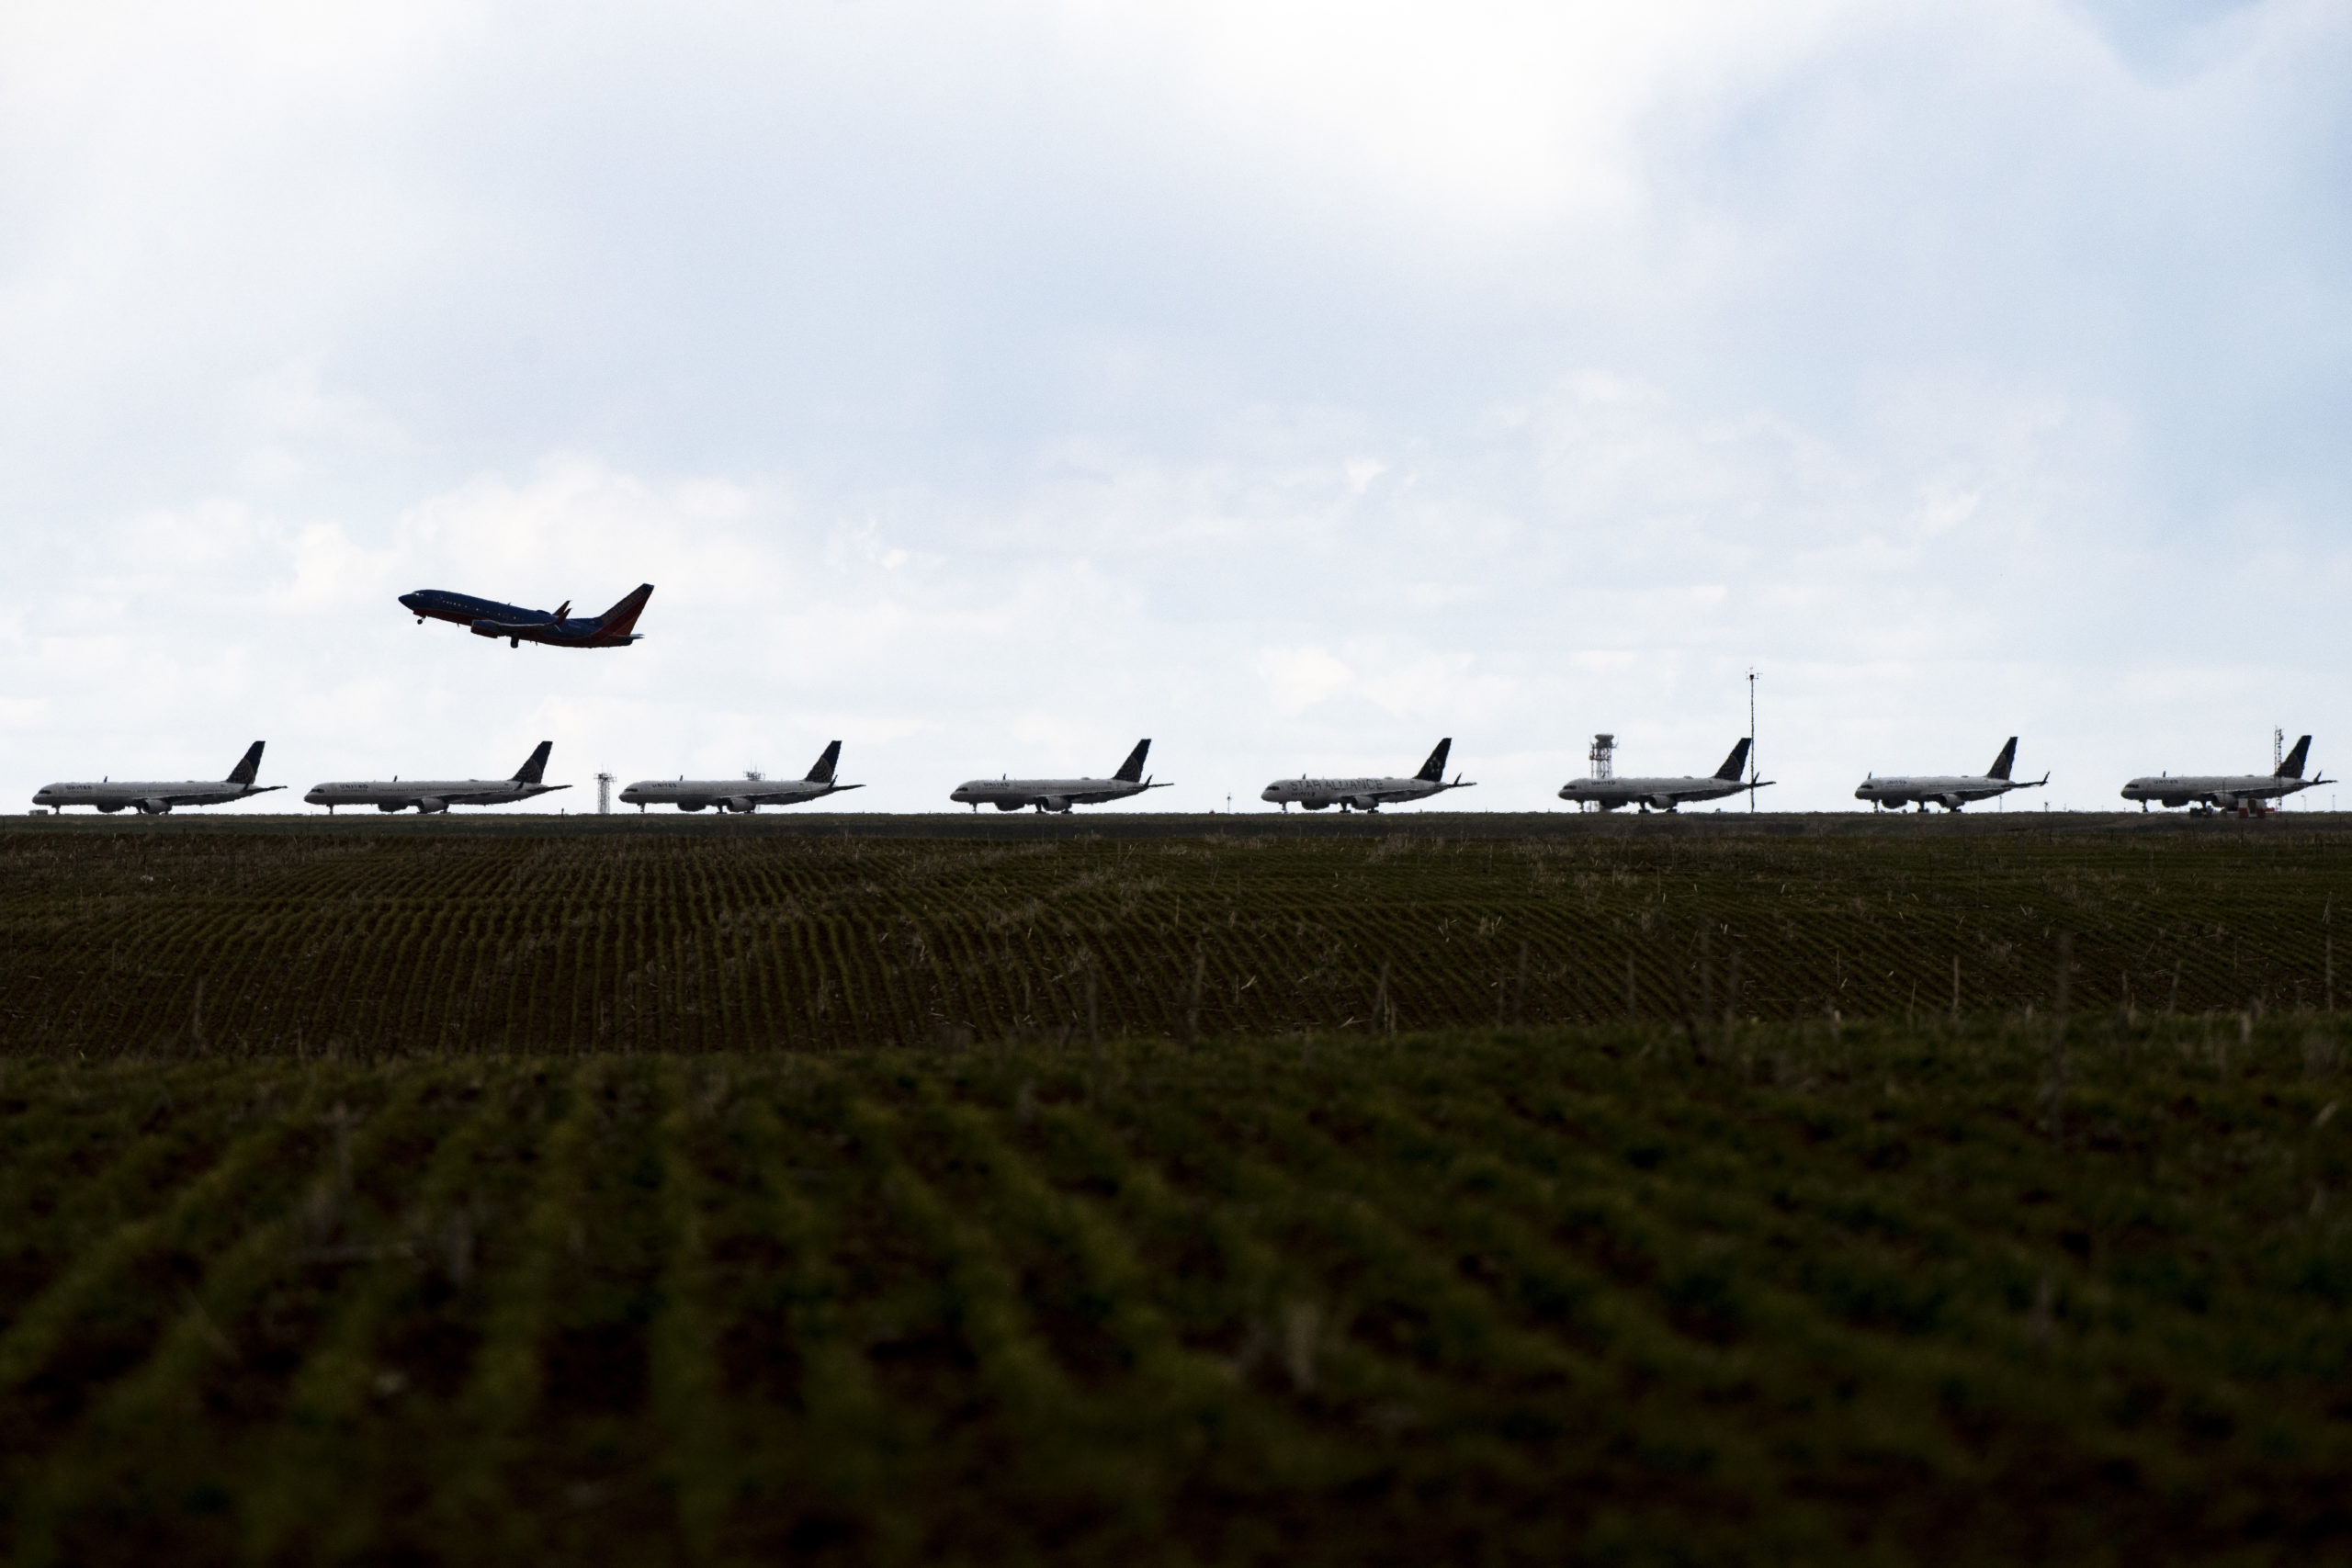 A Southwest Airlines flight takes off as United Airlines planes sit parked on a runway in Denver, Colorado as the coronavirus pandemic slows air travel. (Michael Ciaglo/Getty Images)